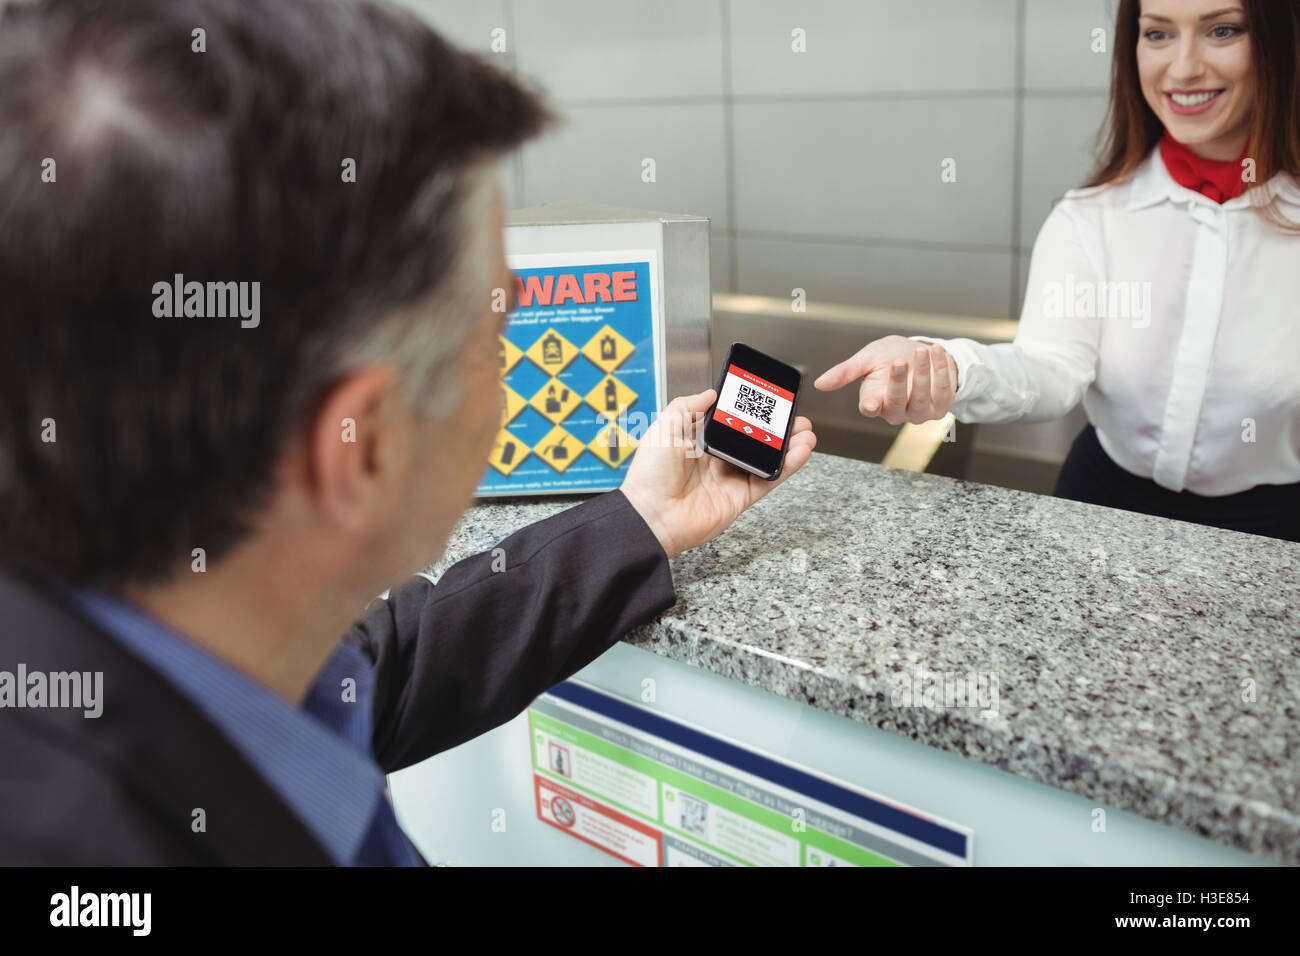 fdcdffb02a1 Businessman showing mobile boarding pass to airline check-in attendant -  Stock Image